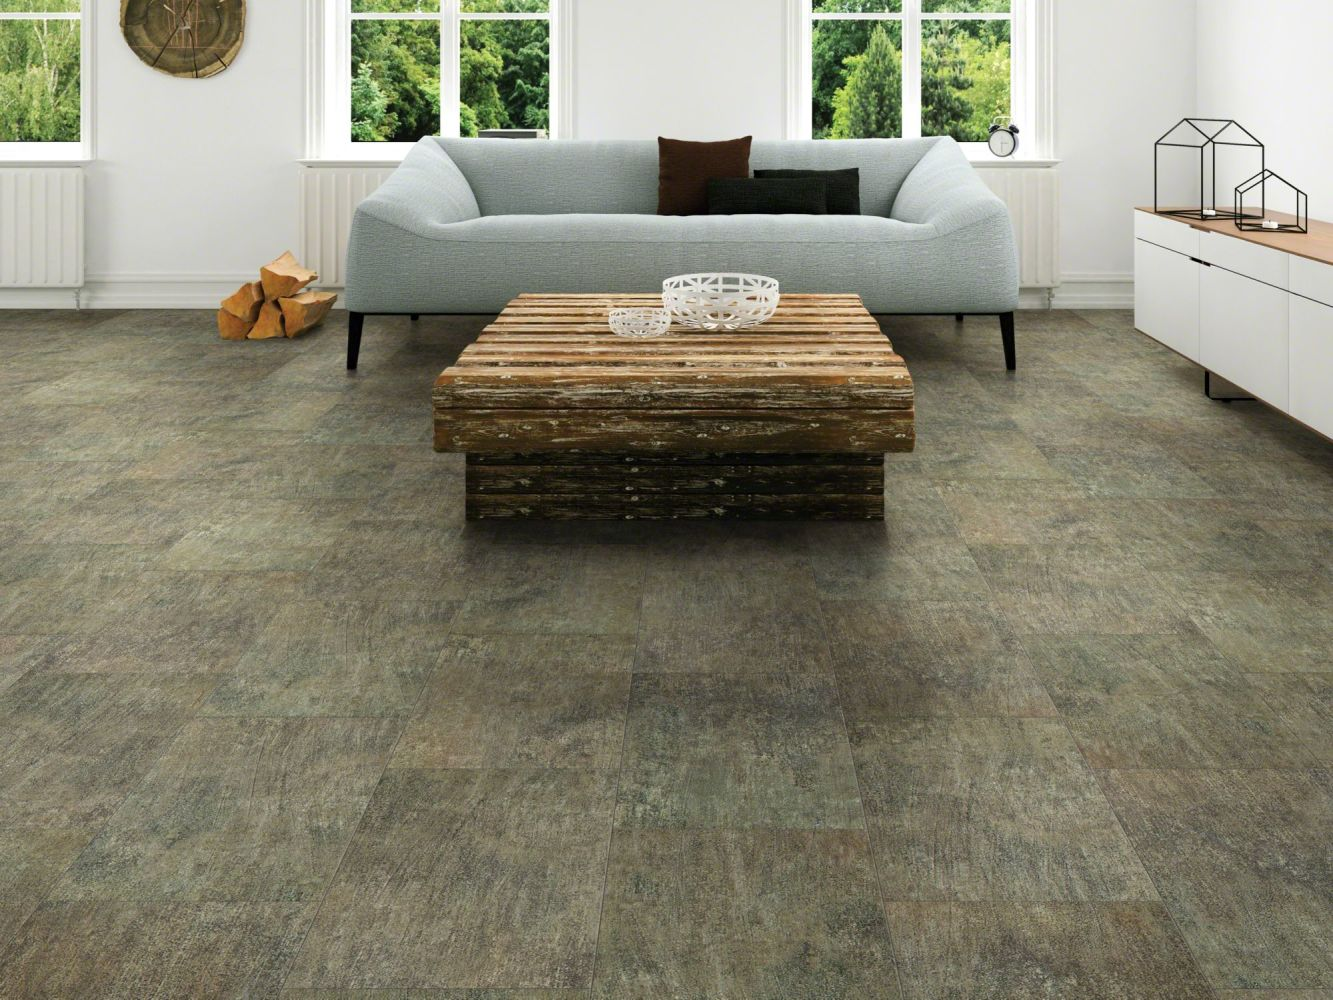 Shaw Floors Resilient Home Foundations Mineralite 720c Plus Alloy 00595_522RG